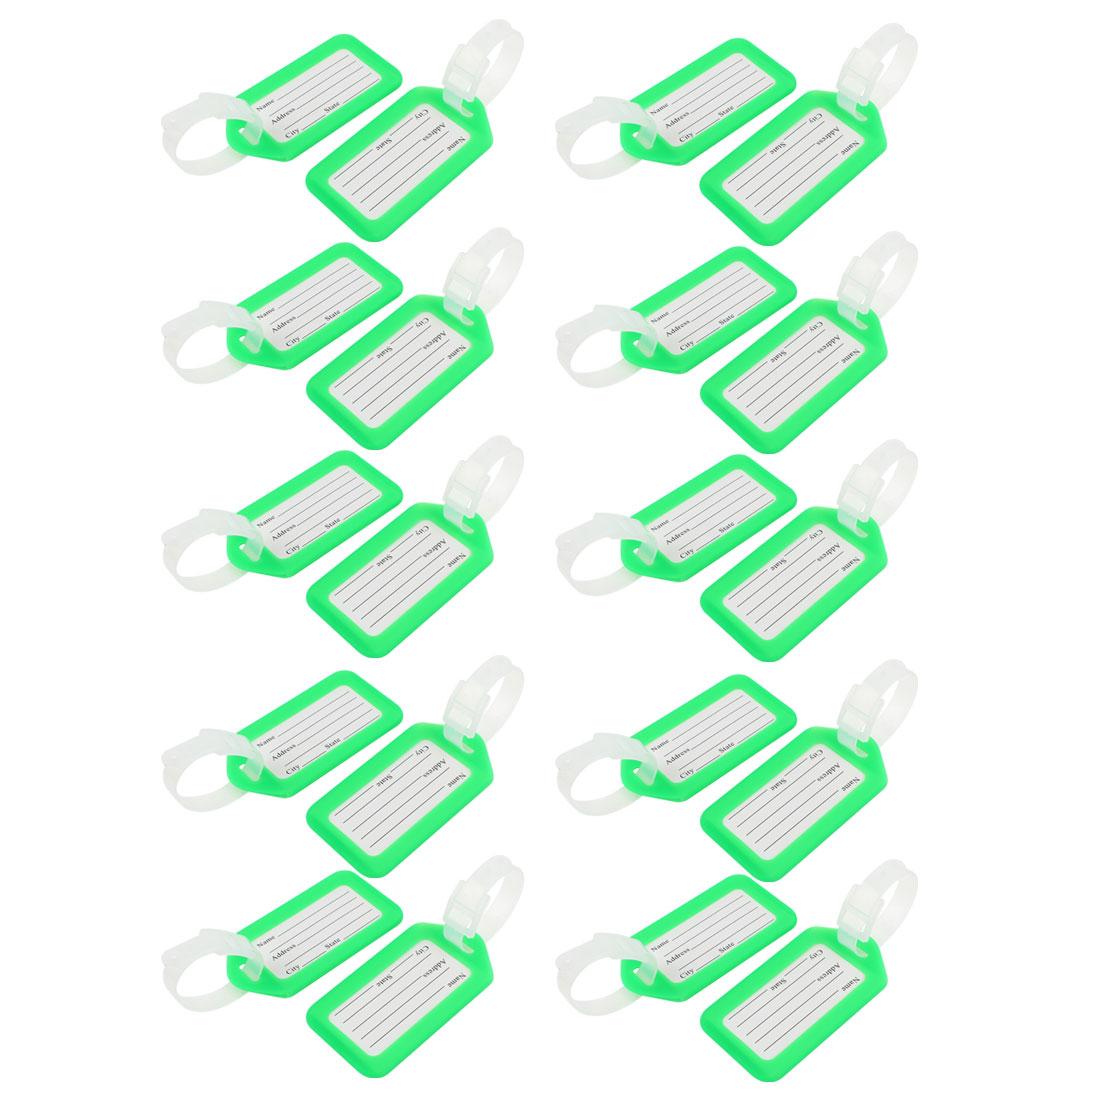 Green White Rectangle Design Plastic Suitcase Name Label Luggage Tag 20 Pcs